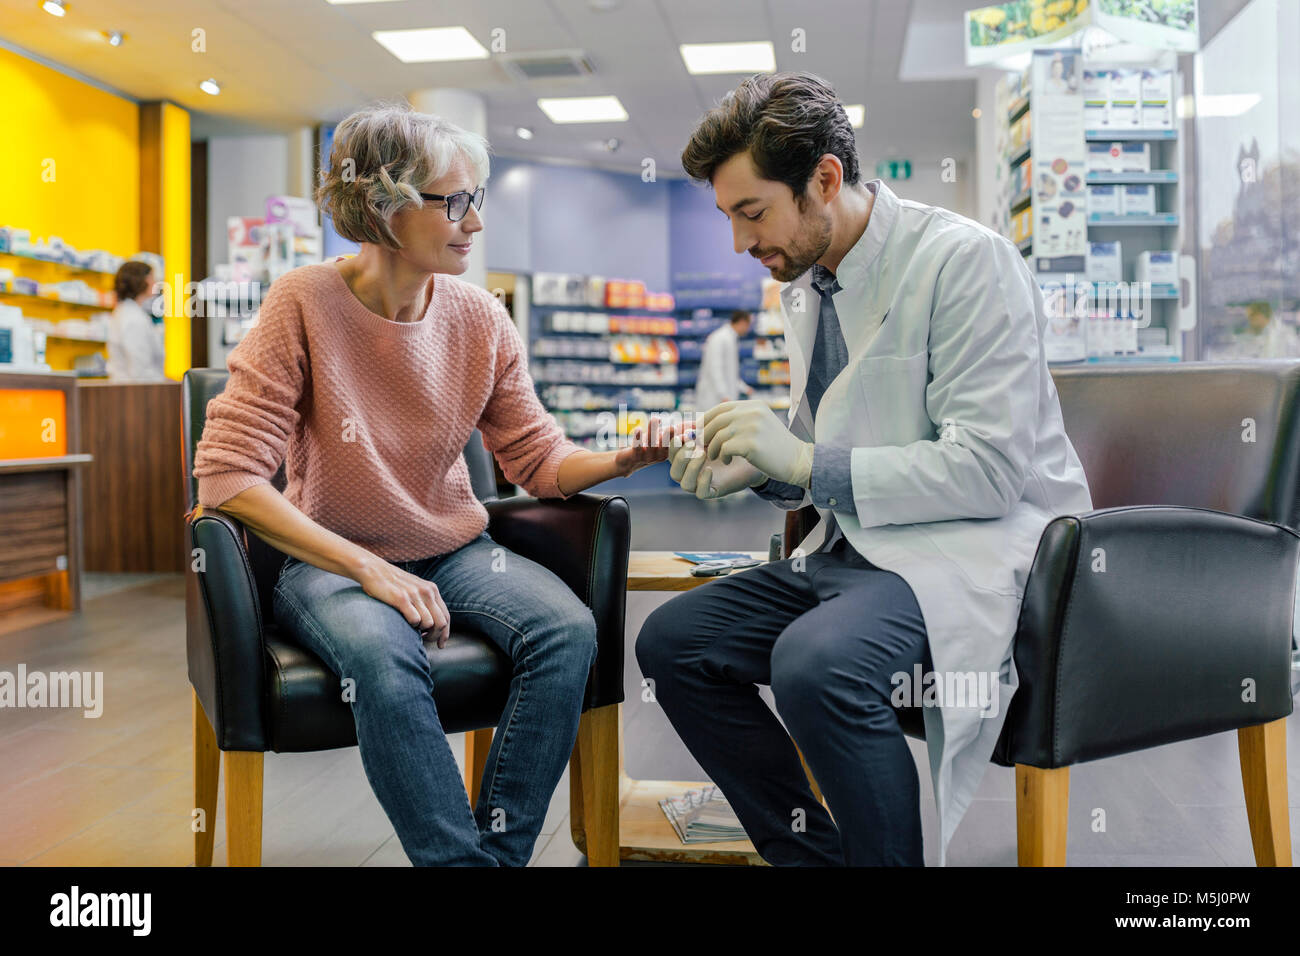 Pharmacist measuring blood sugar of customer in pharmacy Stock Photo